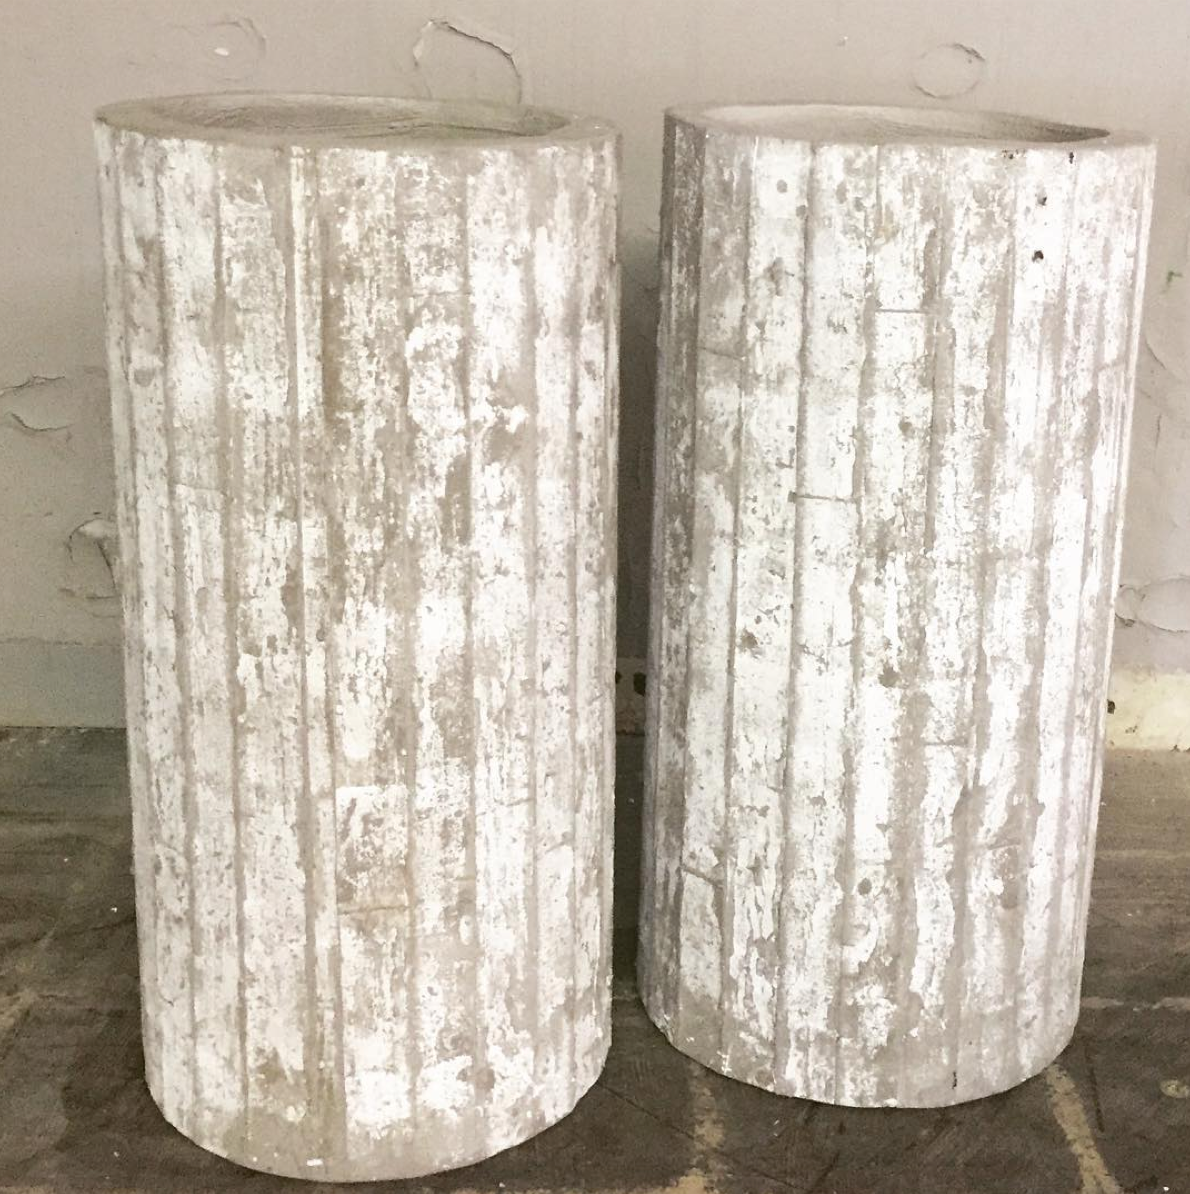 Concrete Containers